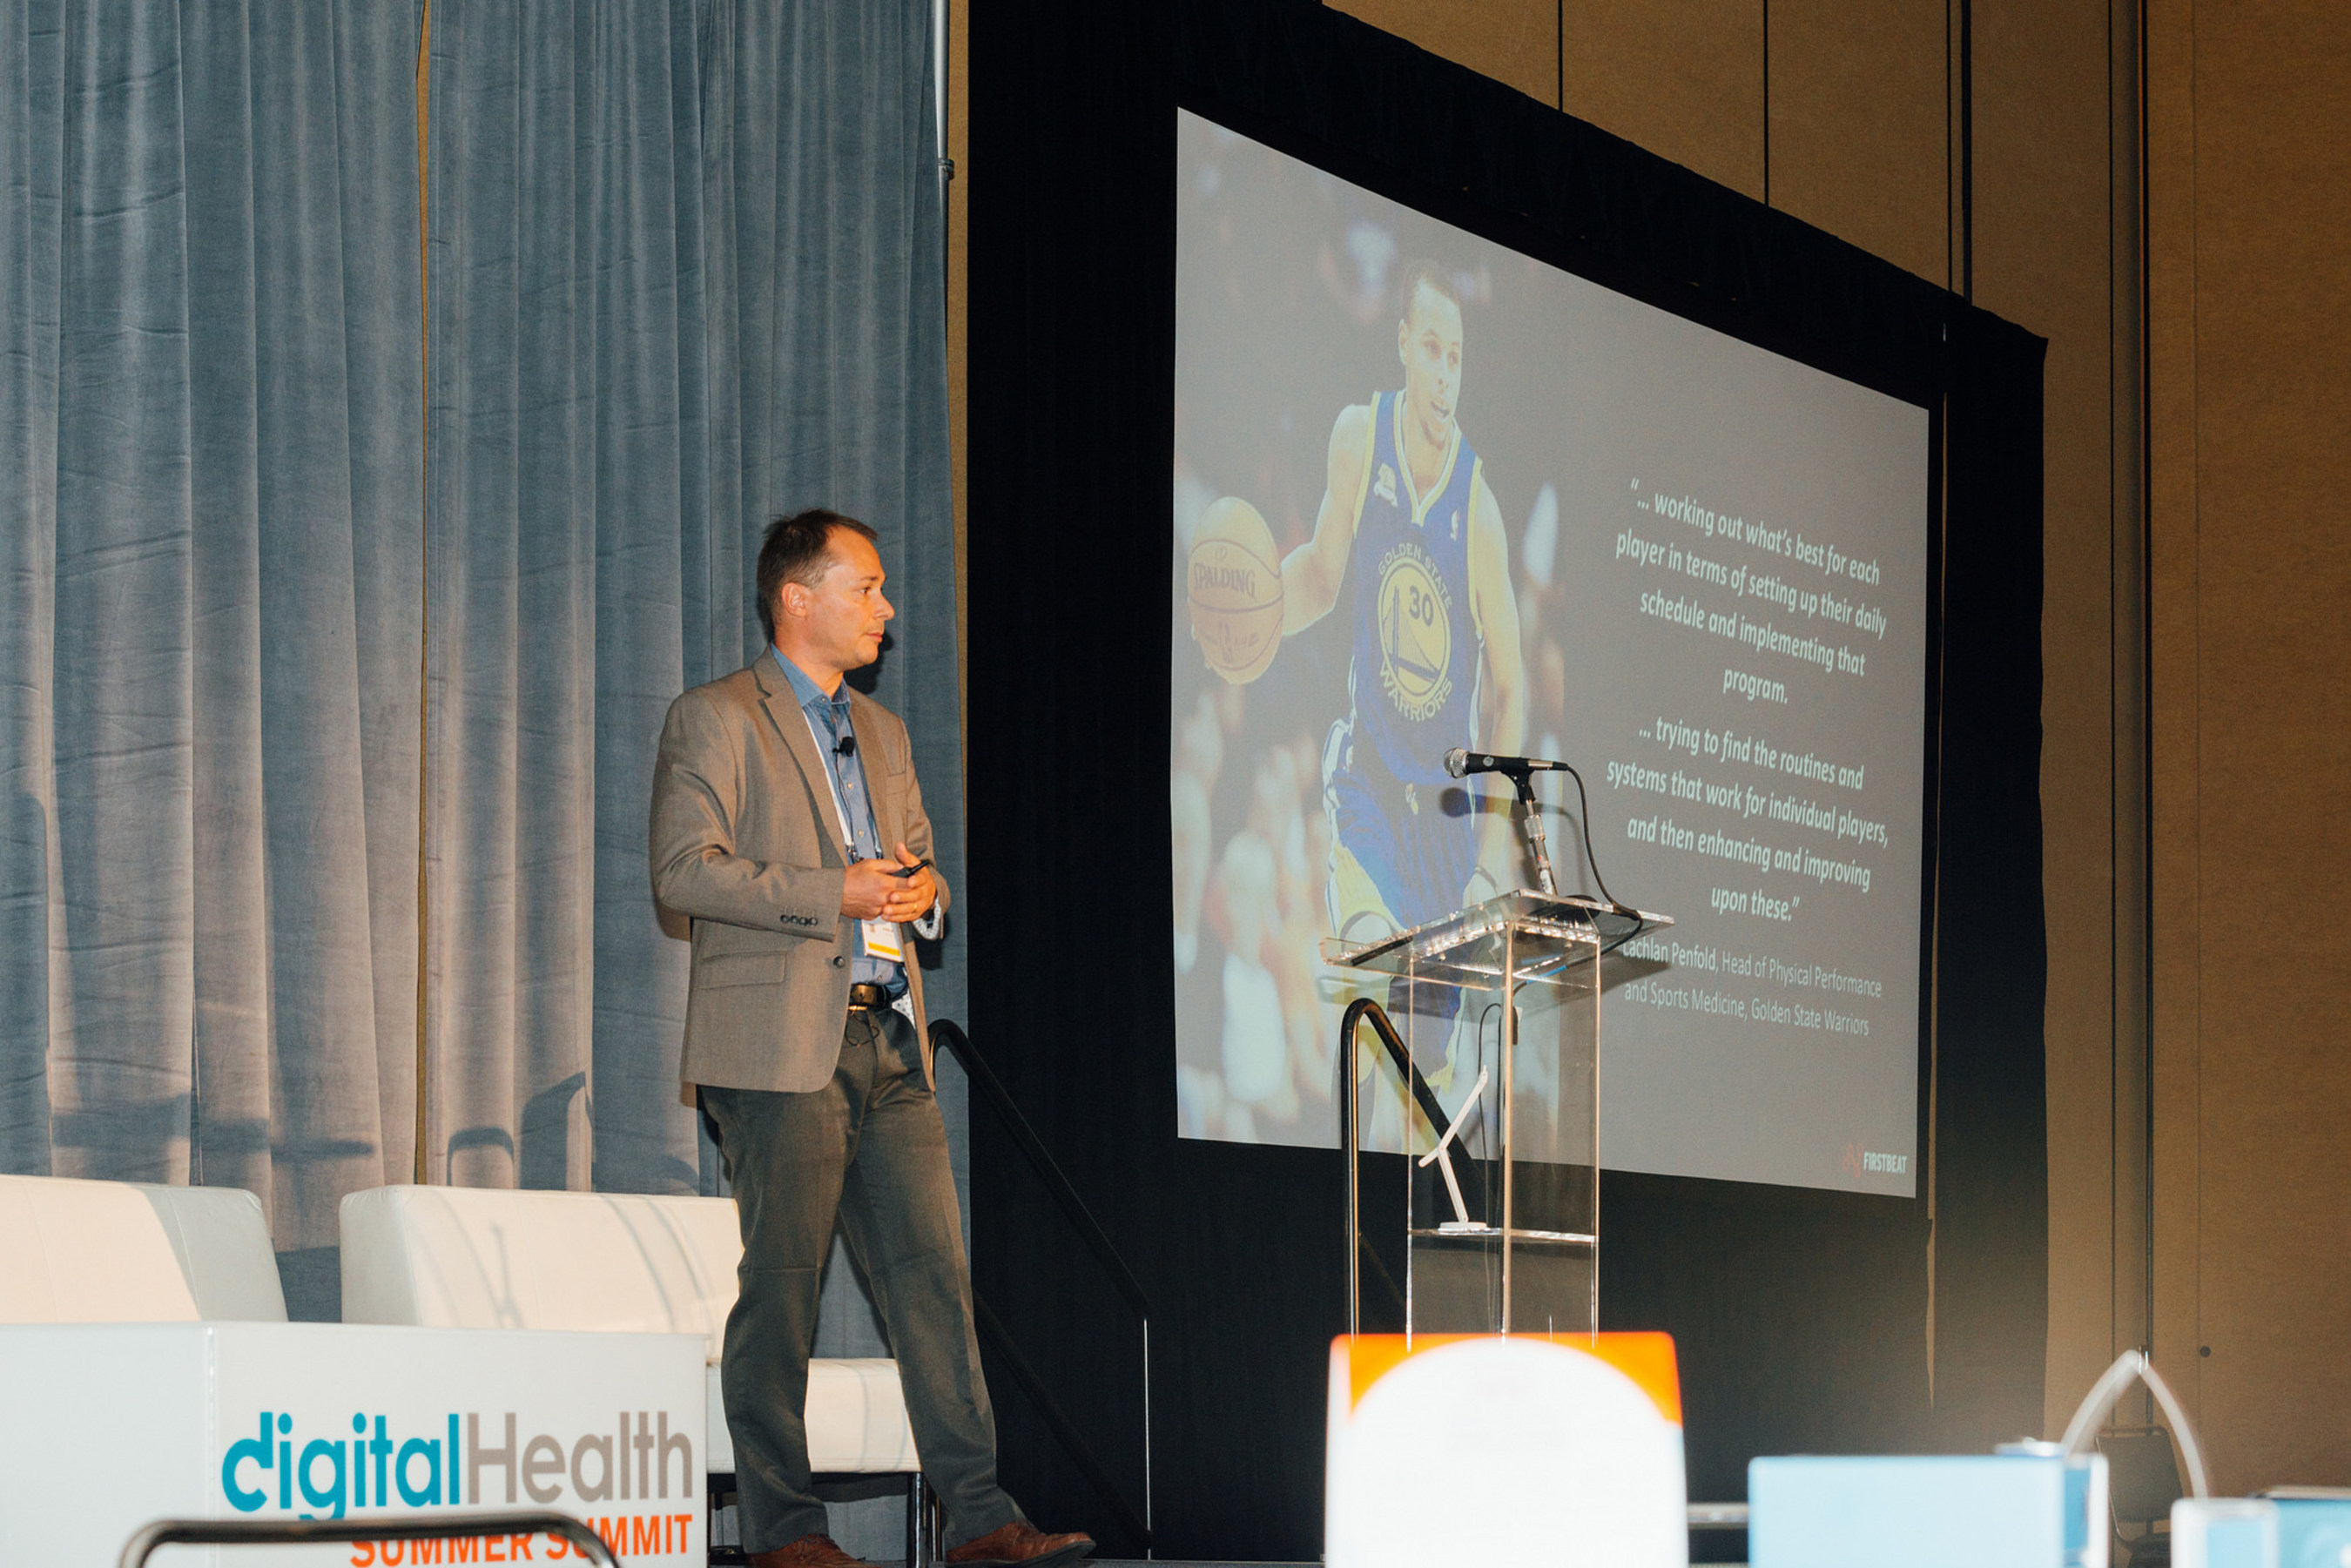 The Digital Health Summer Summit: Highlights that Ignited the Digital Health Tipping Point